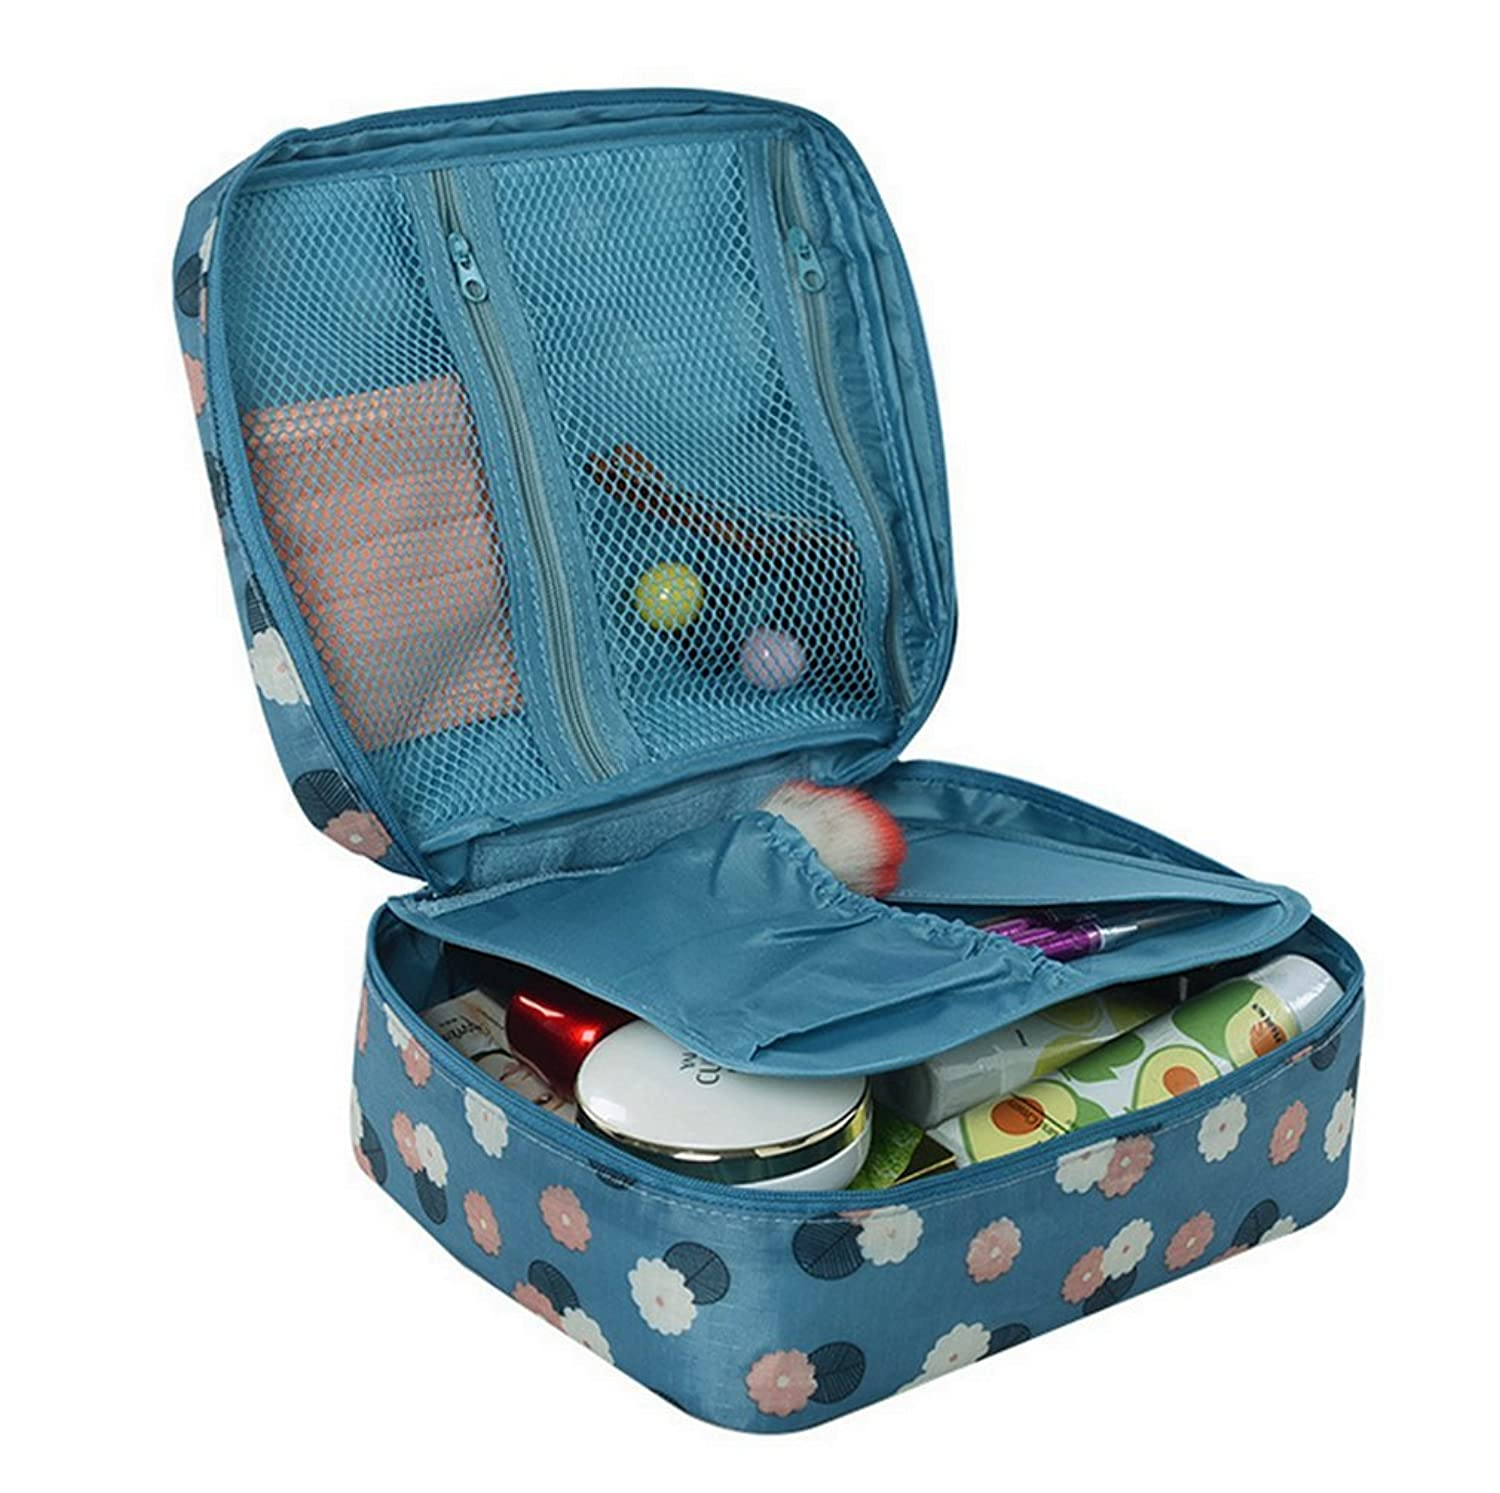 Best Travel Makeup Toiletry Bag